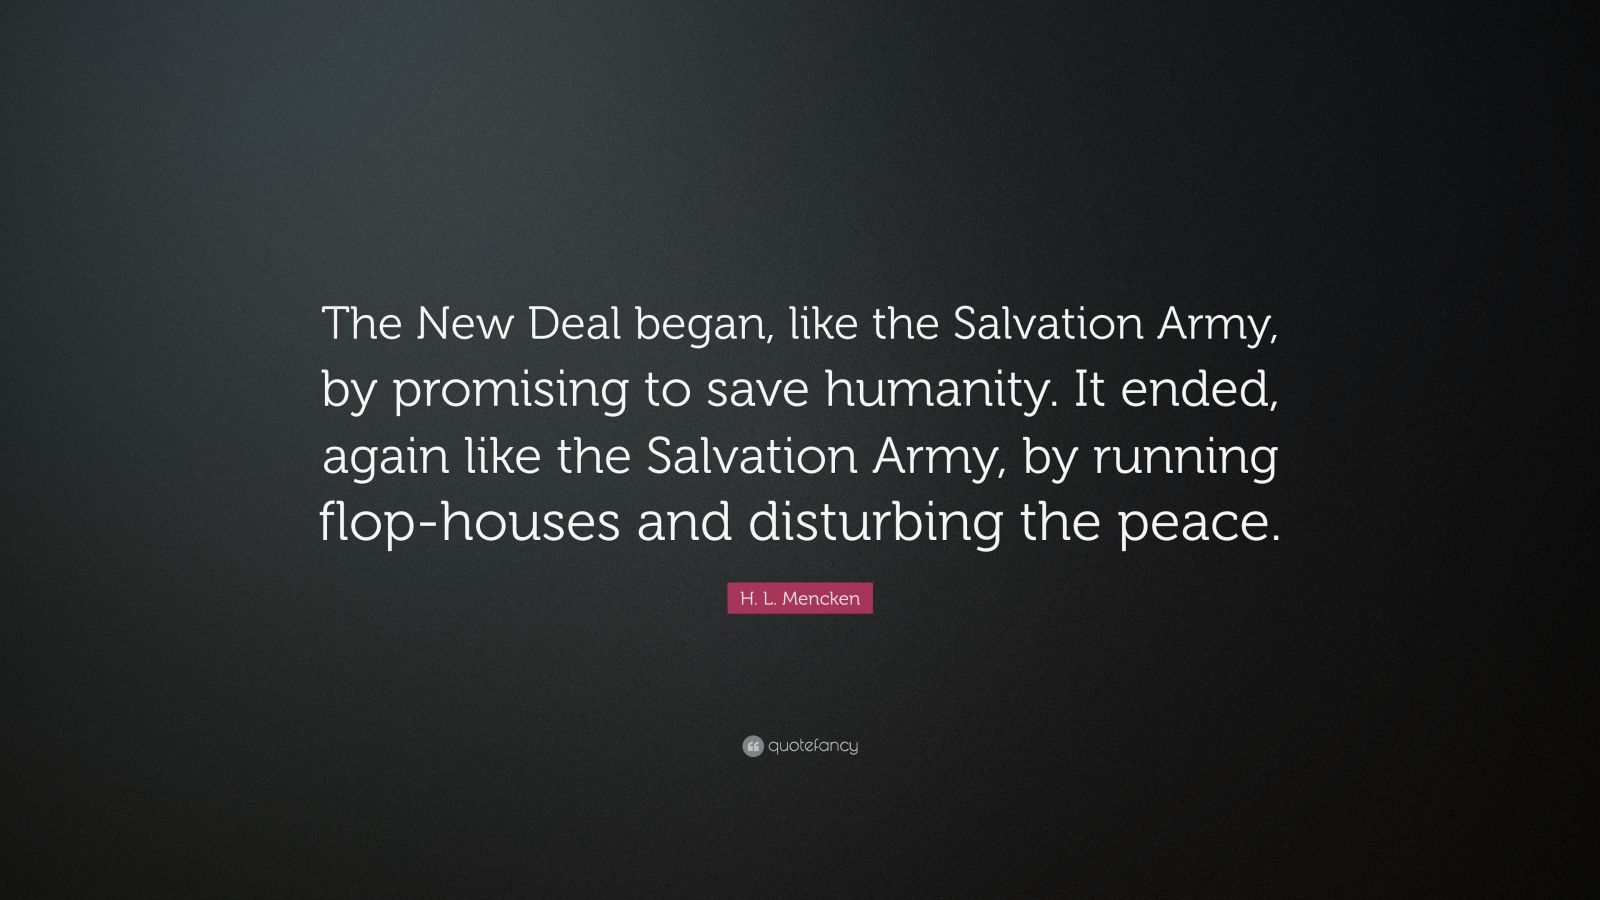 "H. L. Mencken Quote: ""The New Deal began, like the Salvation Army, by promising to save humanity. It ended, again like the Salvation Army, by running flop-houses and disturbing the peace."""